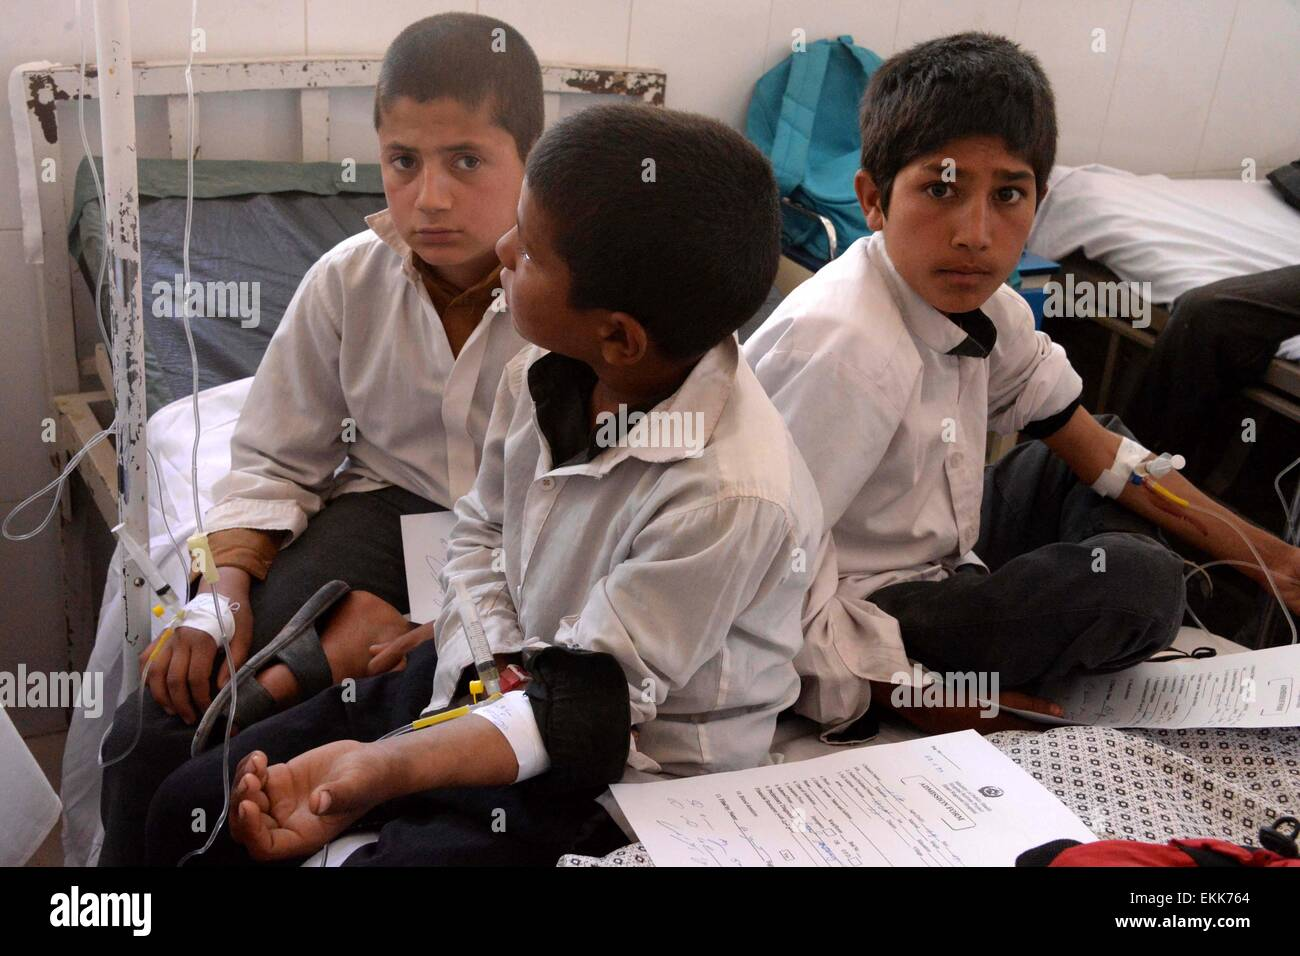 Herat, Afghanistan. 11th Apr, 2015. Afghan school students receive medical treatment after inhaling some mysterious - Stock Image